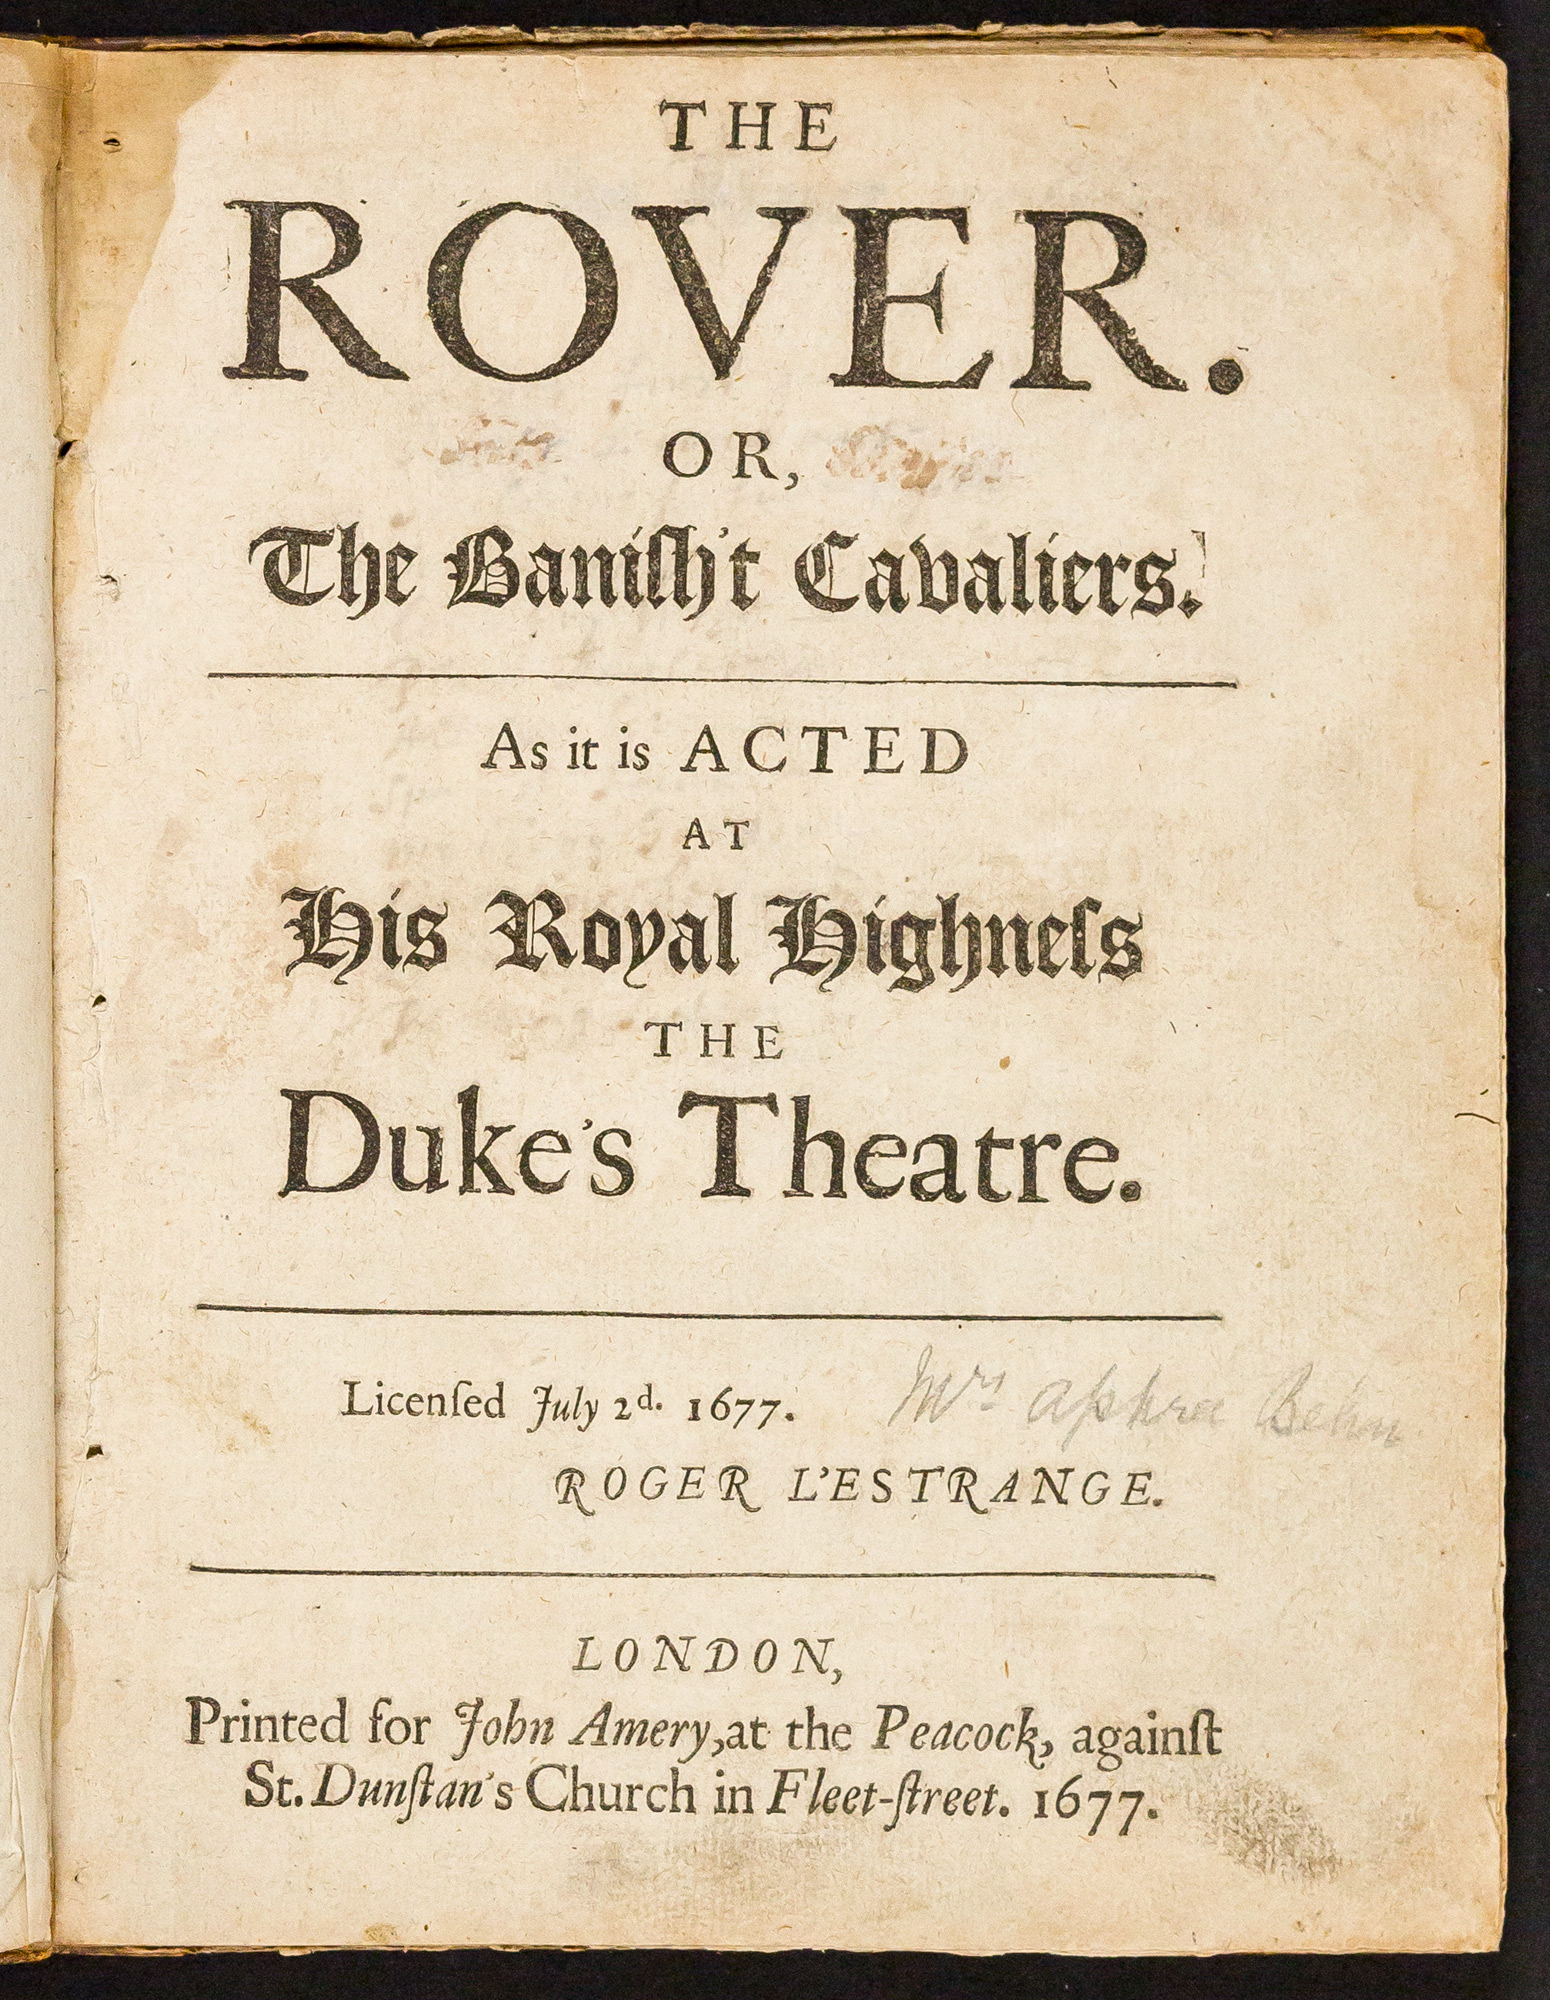 First edition of Aphra Behn's The Rover, with 18th-century prompt-book notes